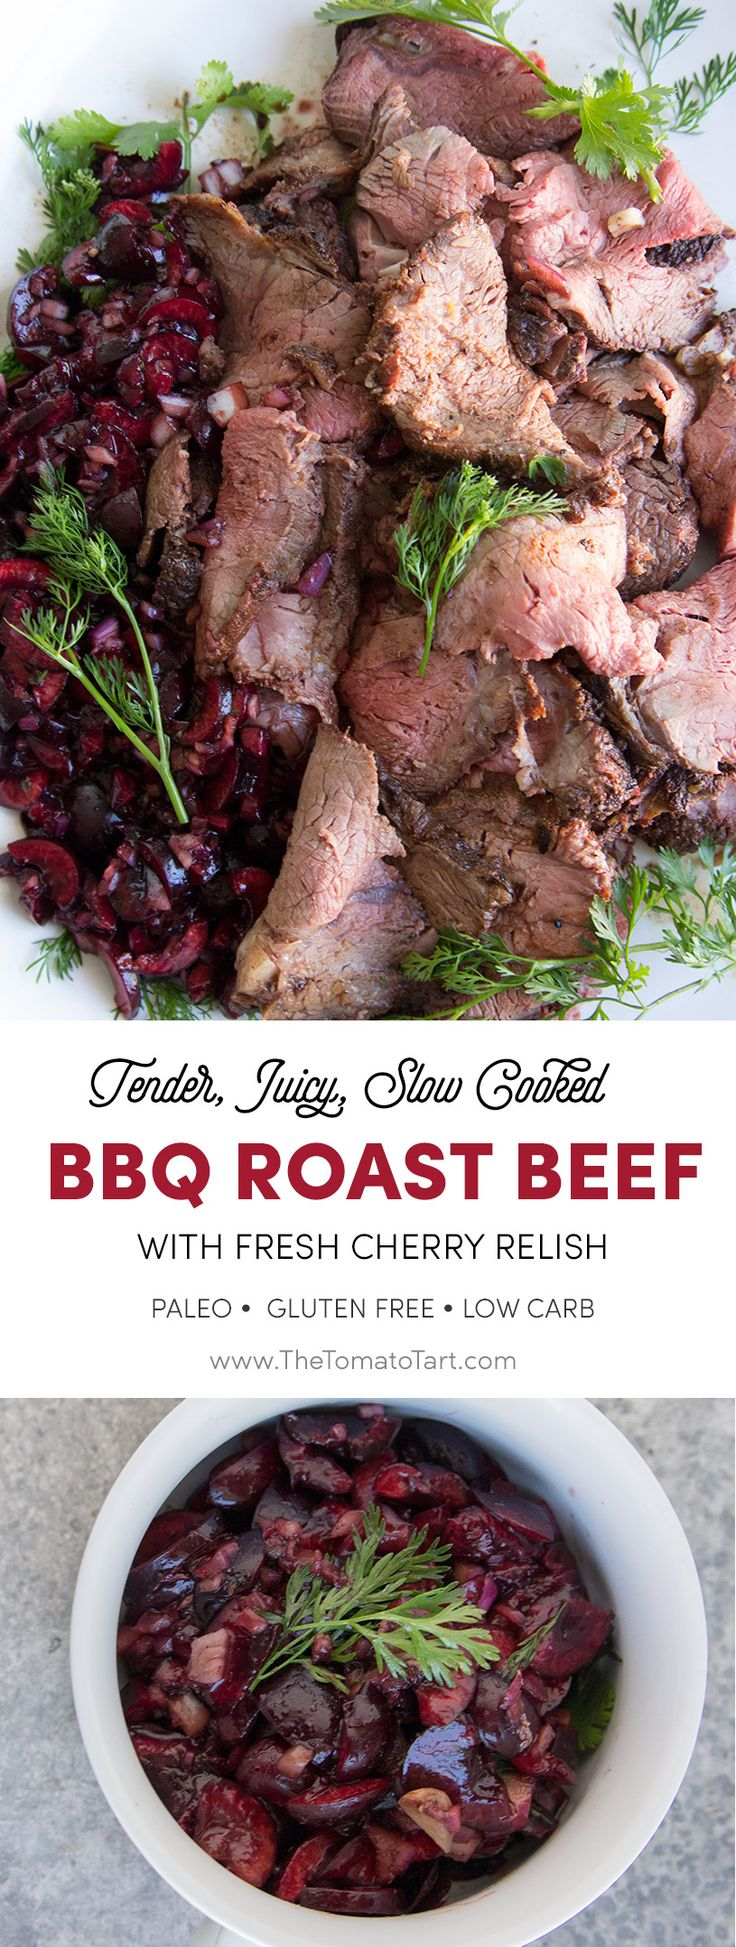 The World's Best Roast Beef Recipe-- Make it On the Grill! Don't forget this gorgeous cherry relish